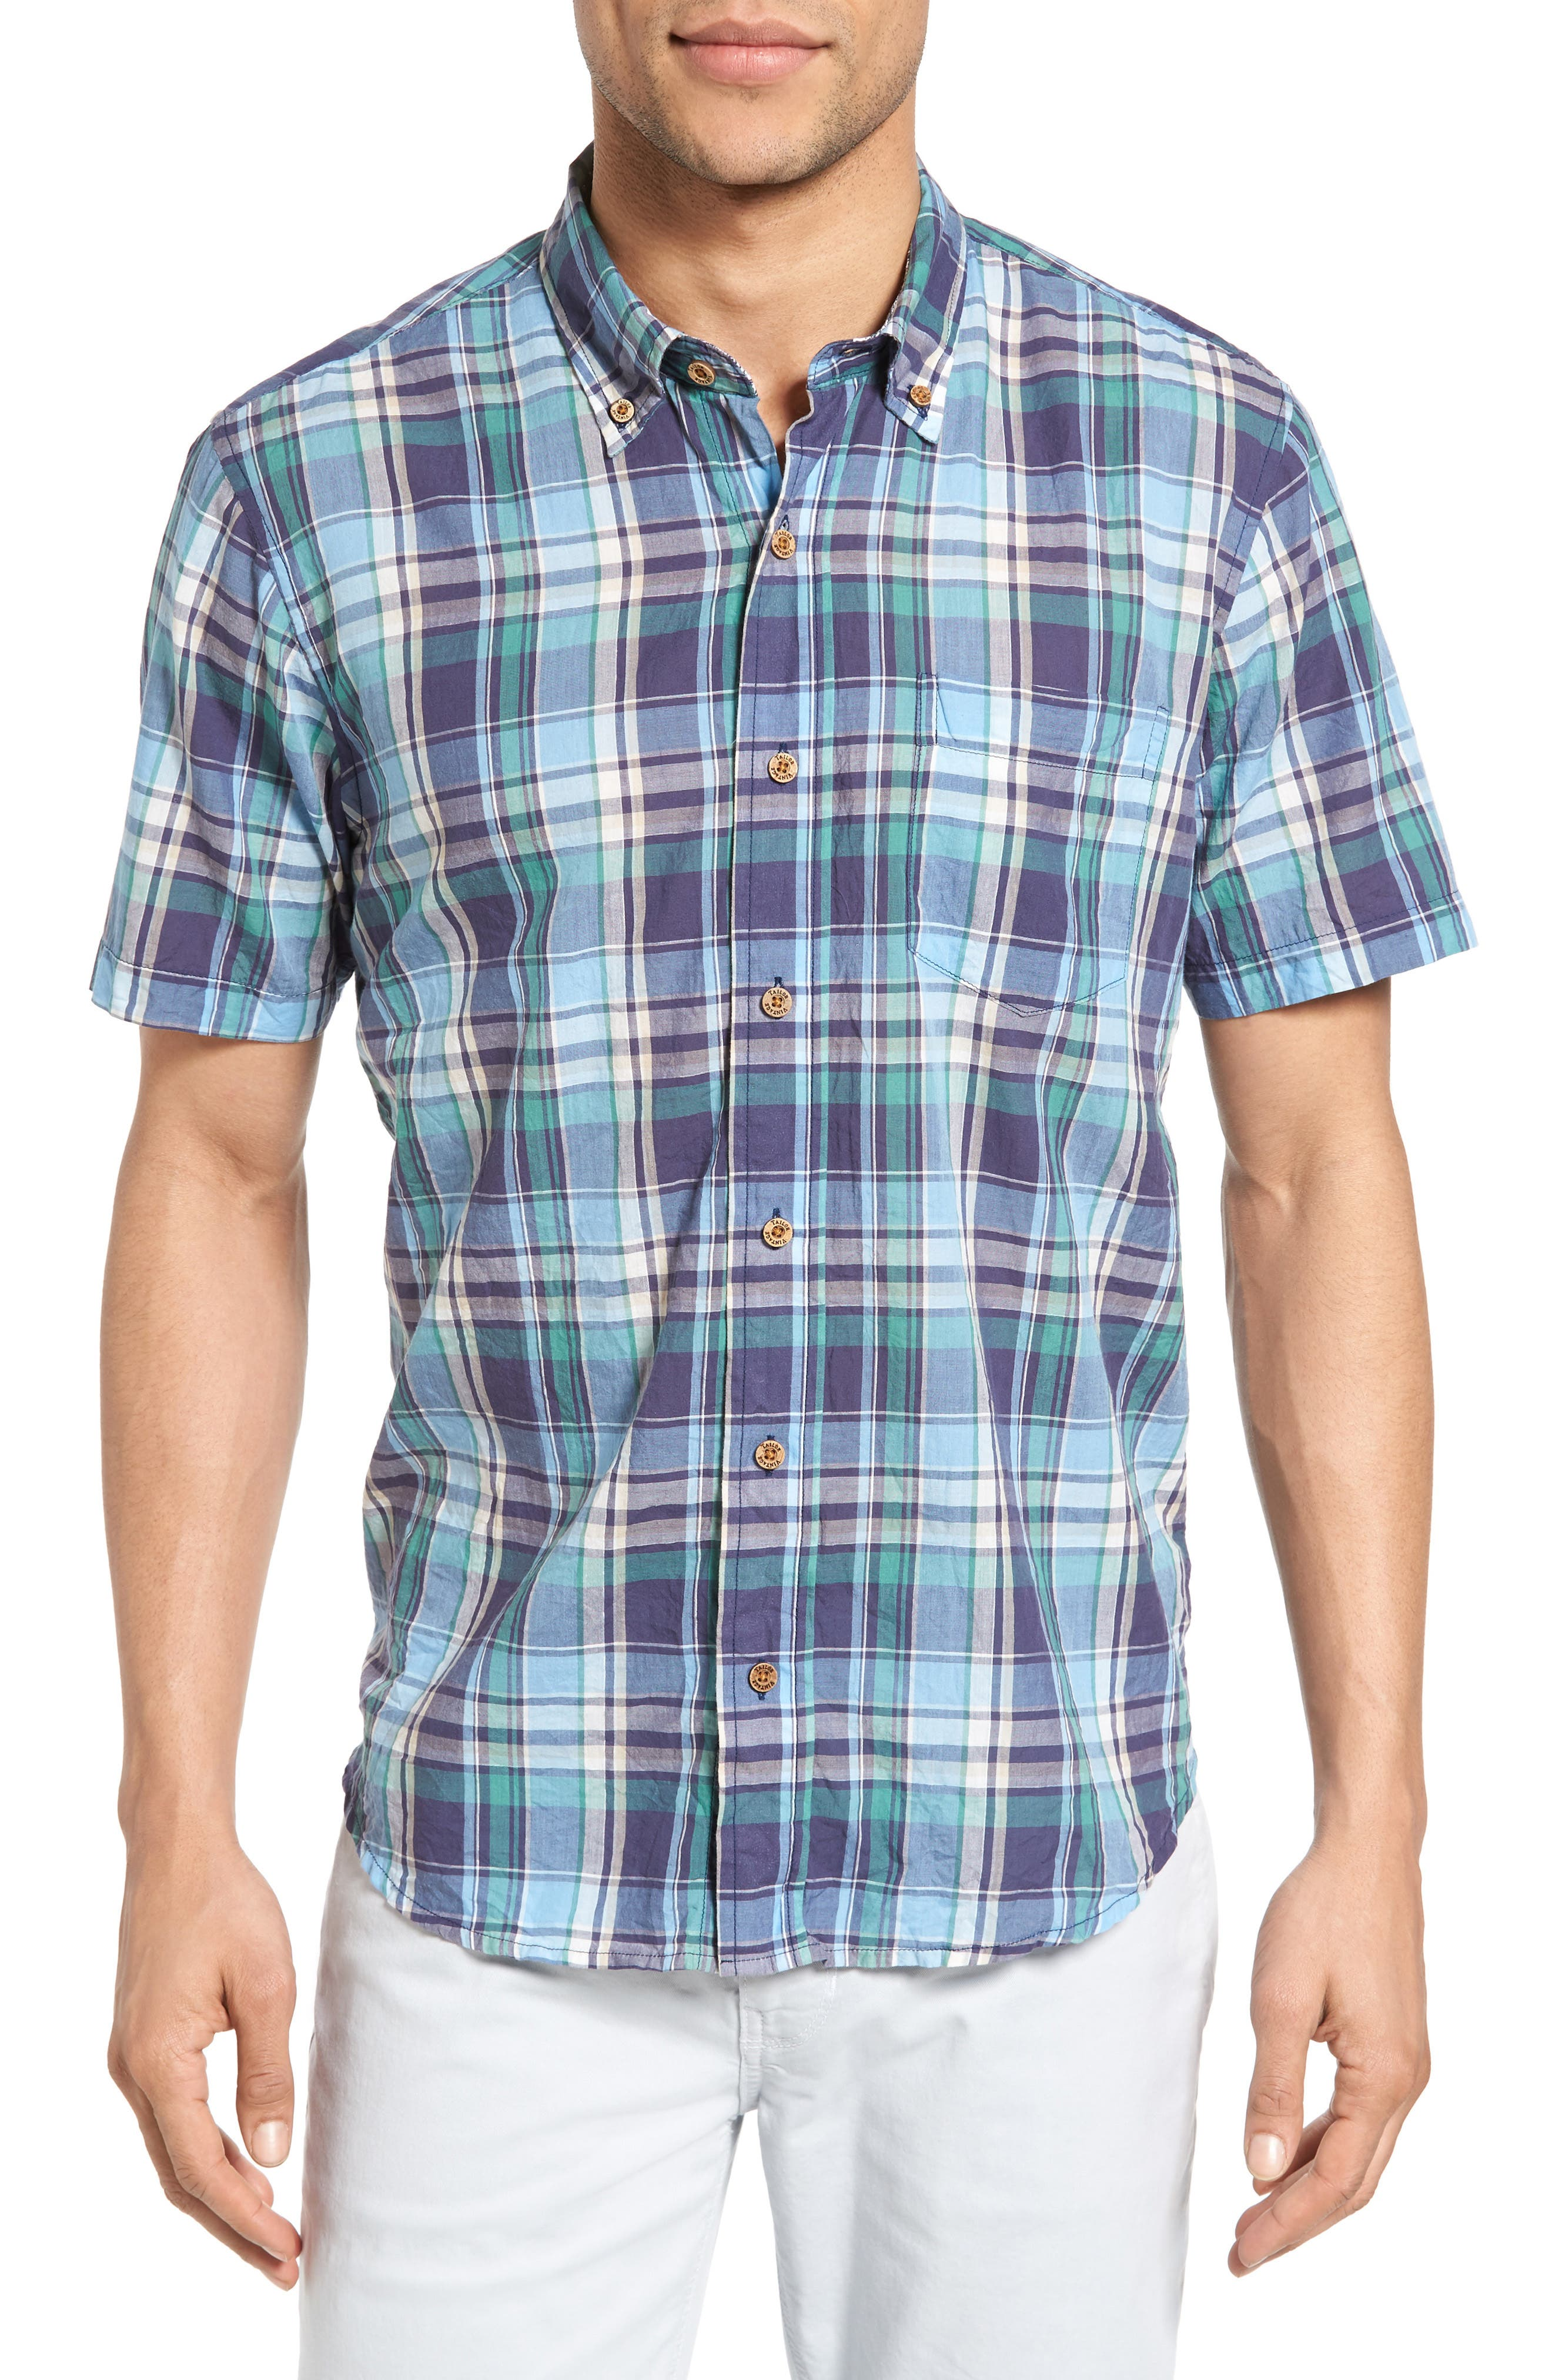 Main Image - Tailor Vintage Crinkle Plaid Sport Shirt